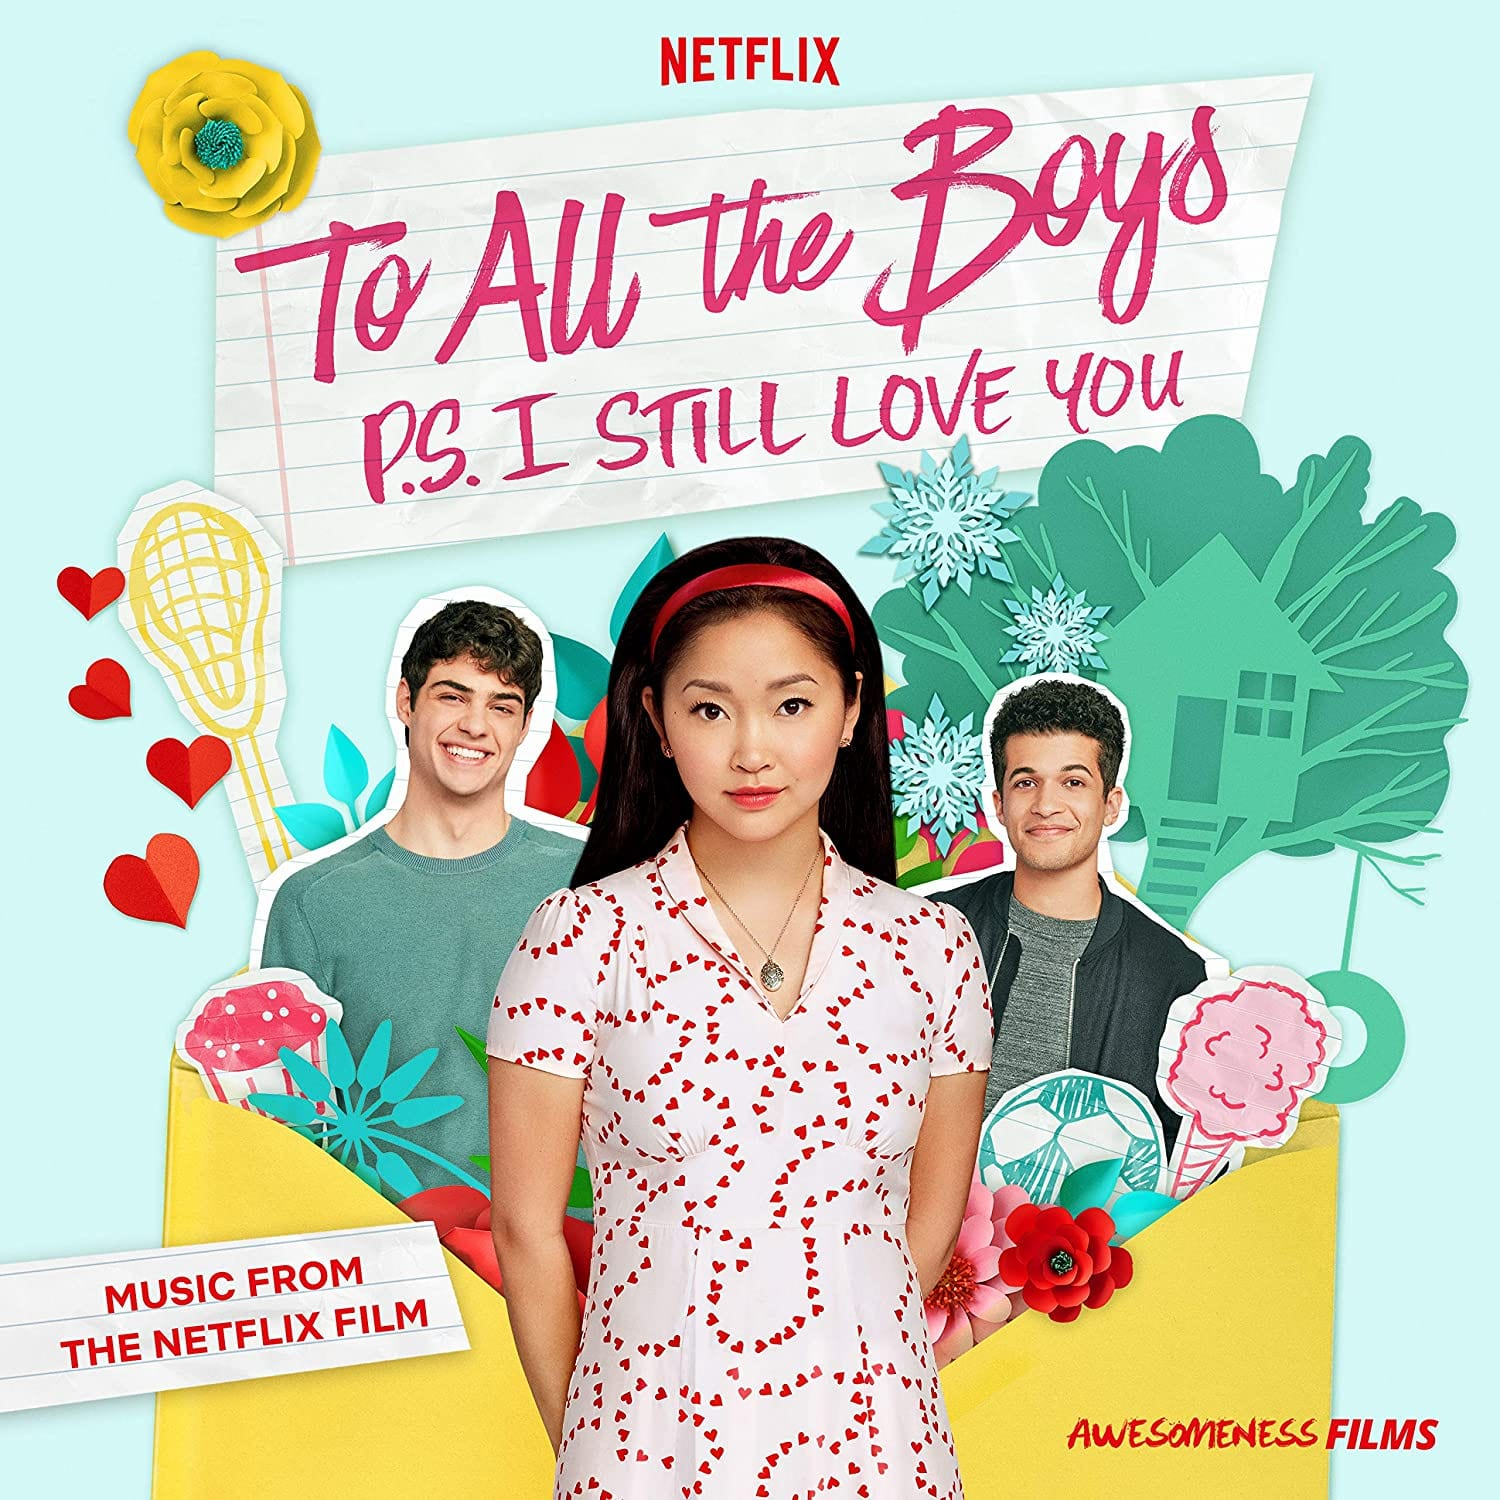 Various Artists - To All The Boys: P.S. I Still Love You (Music From The Netflix Film) [LP] (Pink Vinyl) - Urban Vinyl | Records, Headphones, and more.